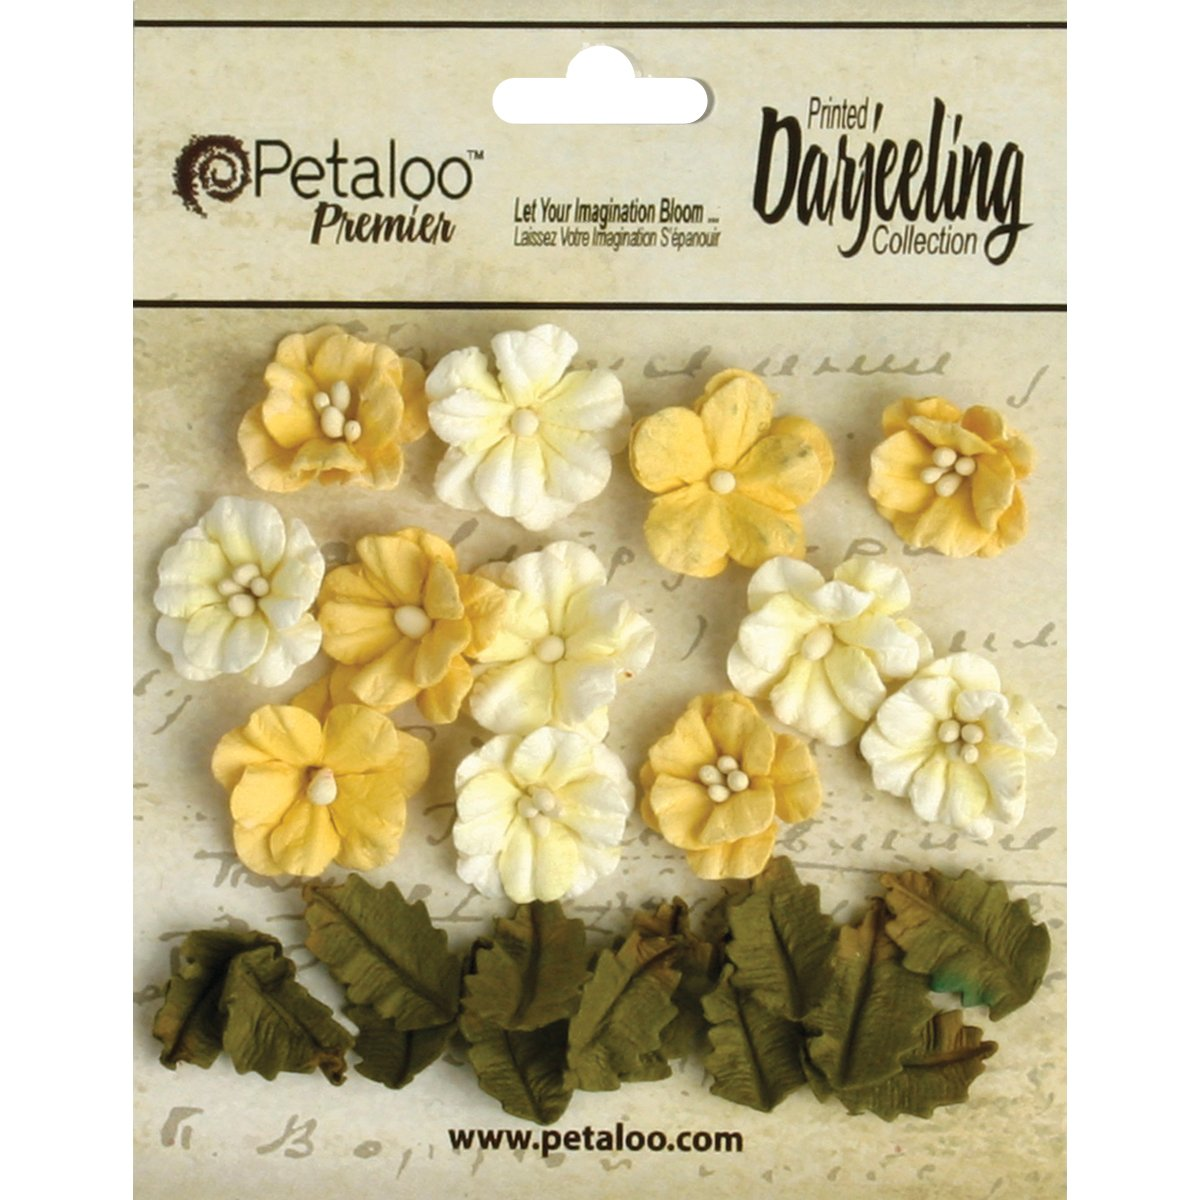 Petaloo Darjeeling Teastained Petite Flowers for Scrapbooking, 0.625-Inch and 0.875-Inch, Yellow, 24-Pack P1465-109